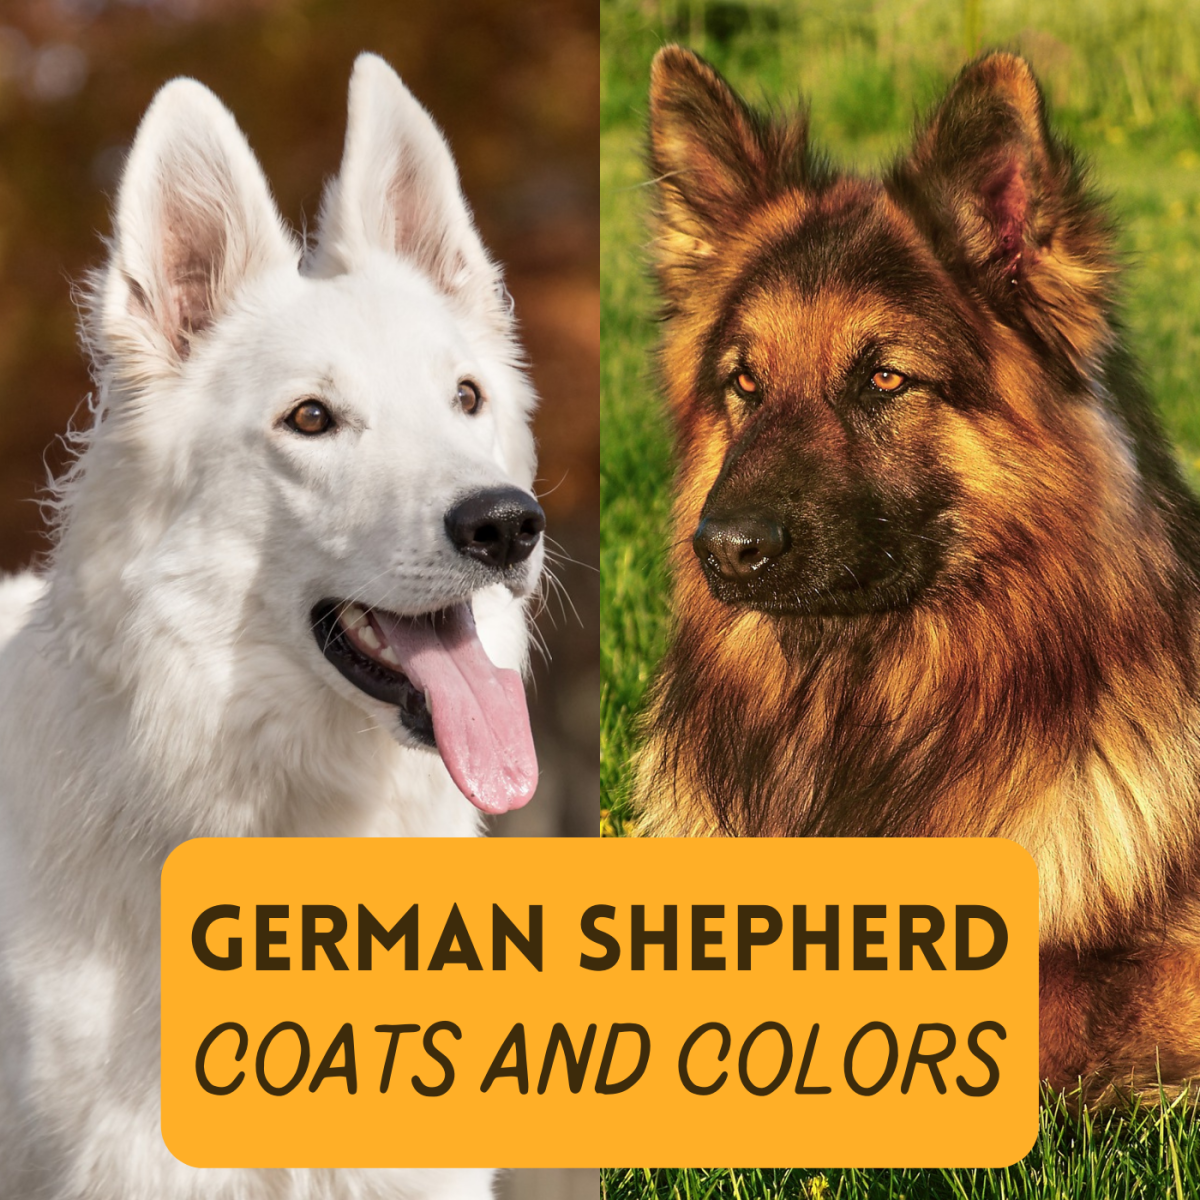 Discover the wide variety of coat types and colors for German Shepherd dogs!